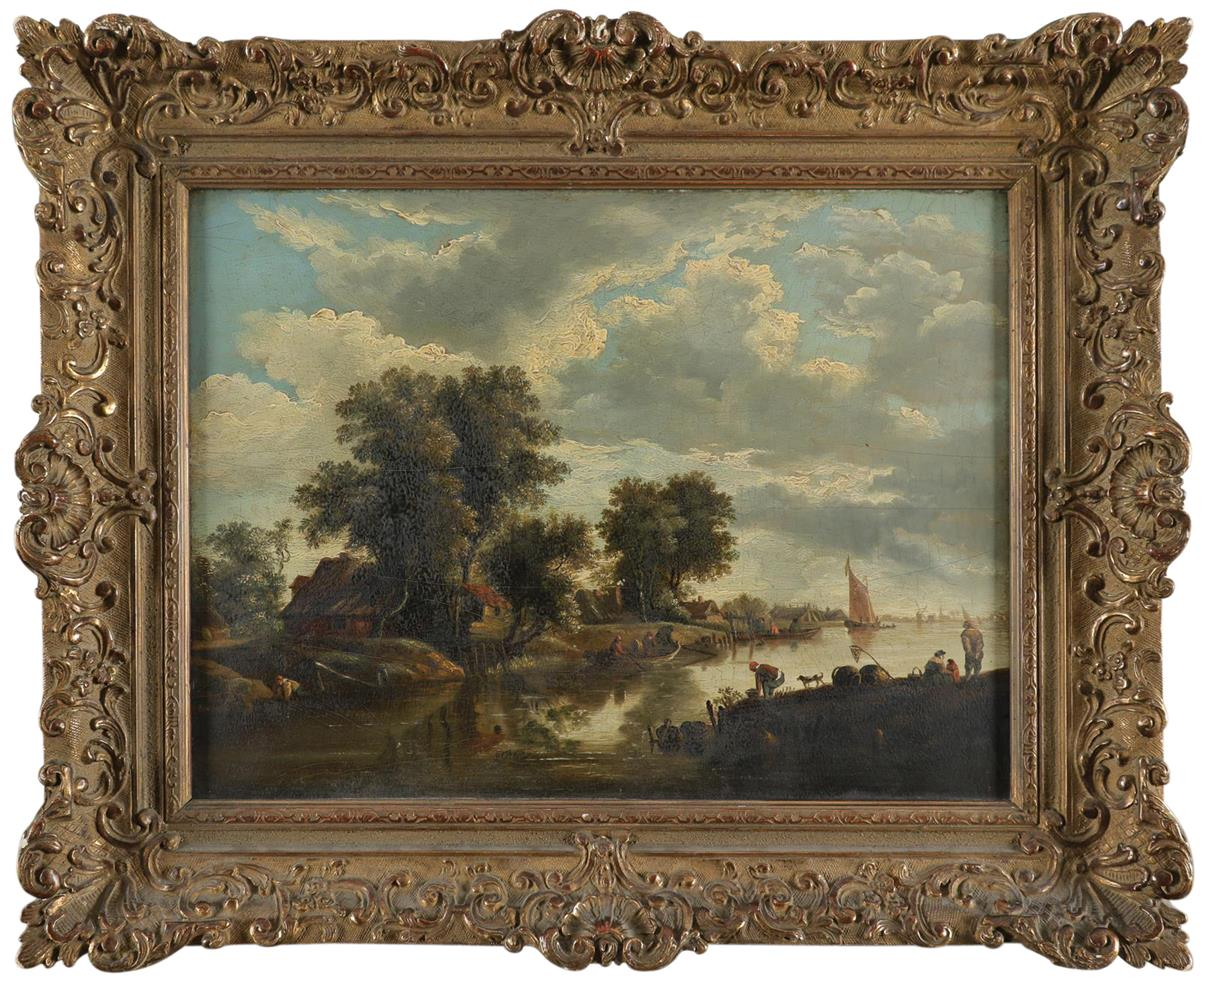 Dutch School 18th Century River landscape with figures fishing and boating Oil on panel 32.8 x 44. - Image 2 of 3